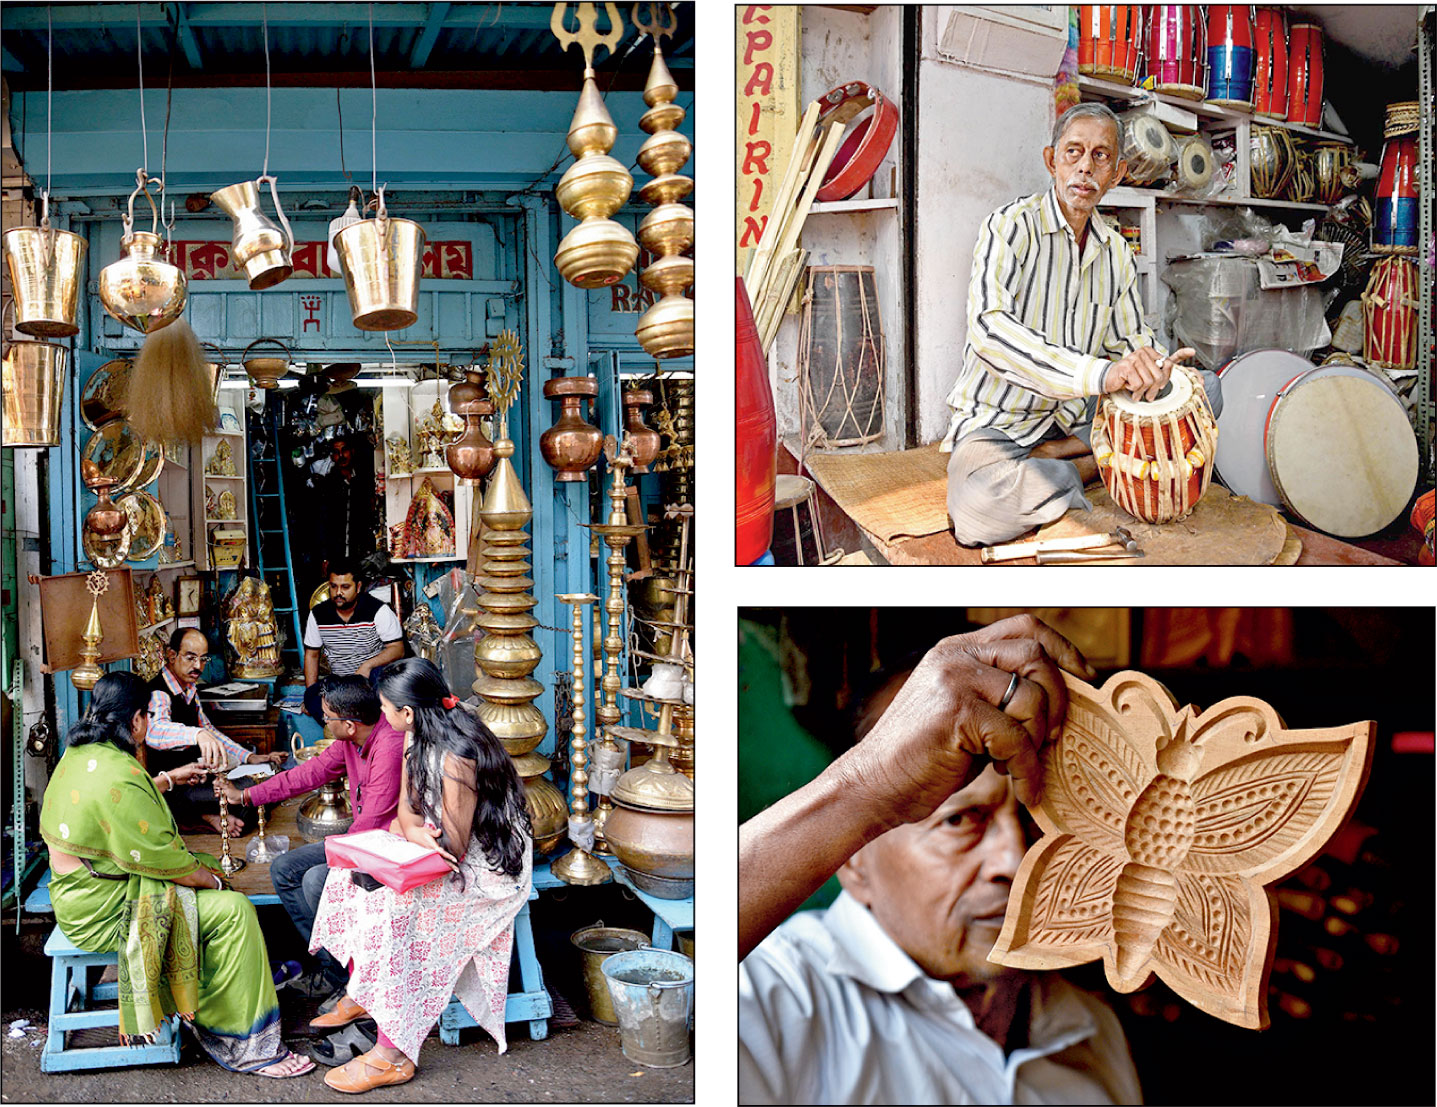 VARIETY SHOW: The old Chitpore Road, now known as Rabindra Sarani, is dotted with shops selling utensils, musical instruments and sandesh moulds among other things